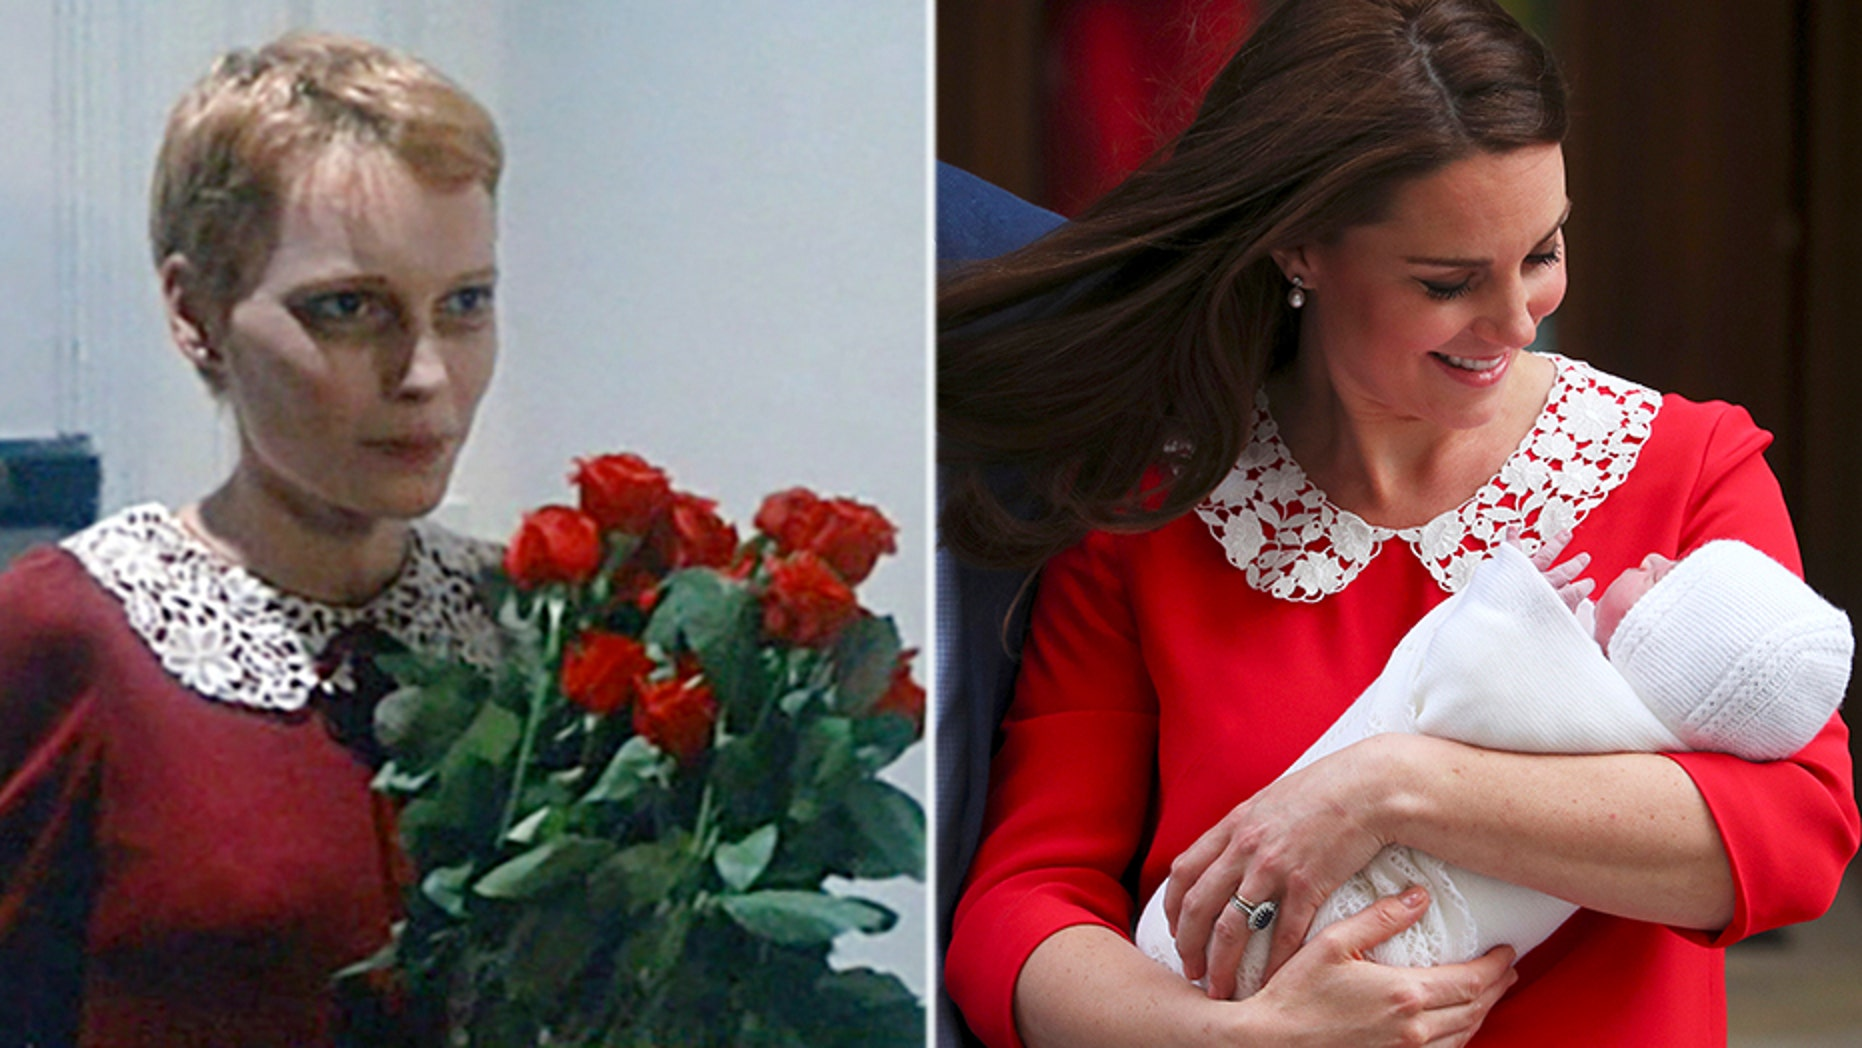 The royal mom's baby debut dress is causing quite a stir on social media.